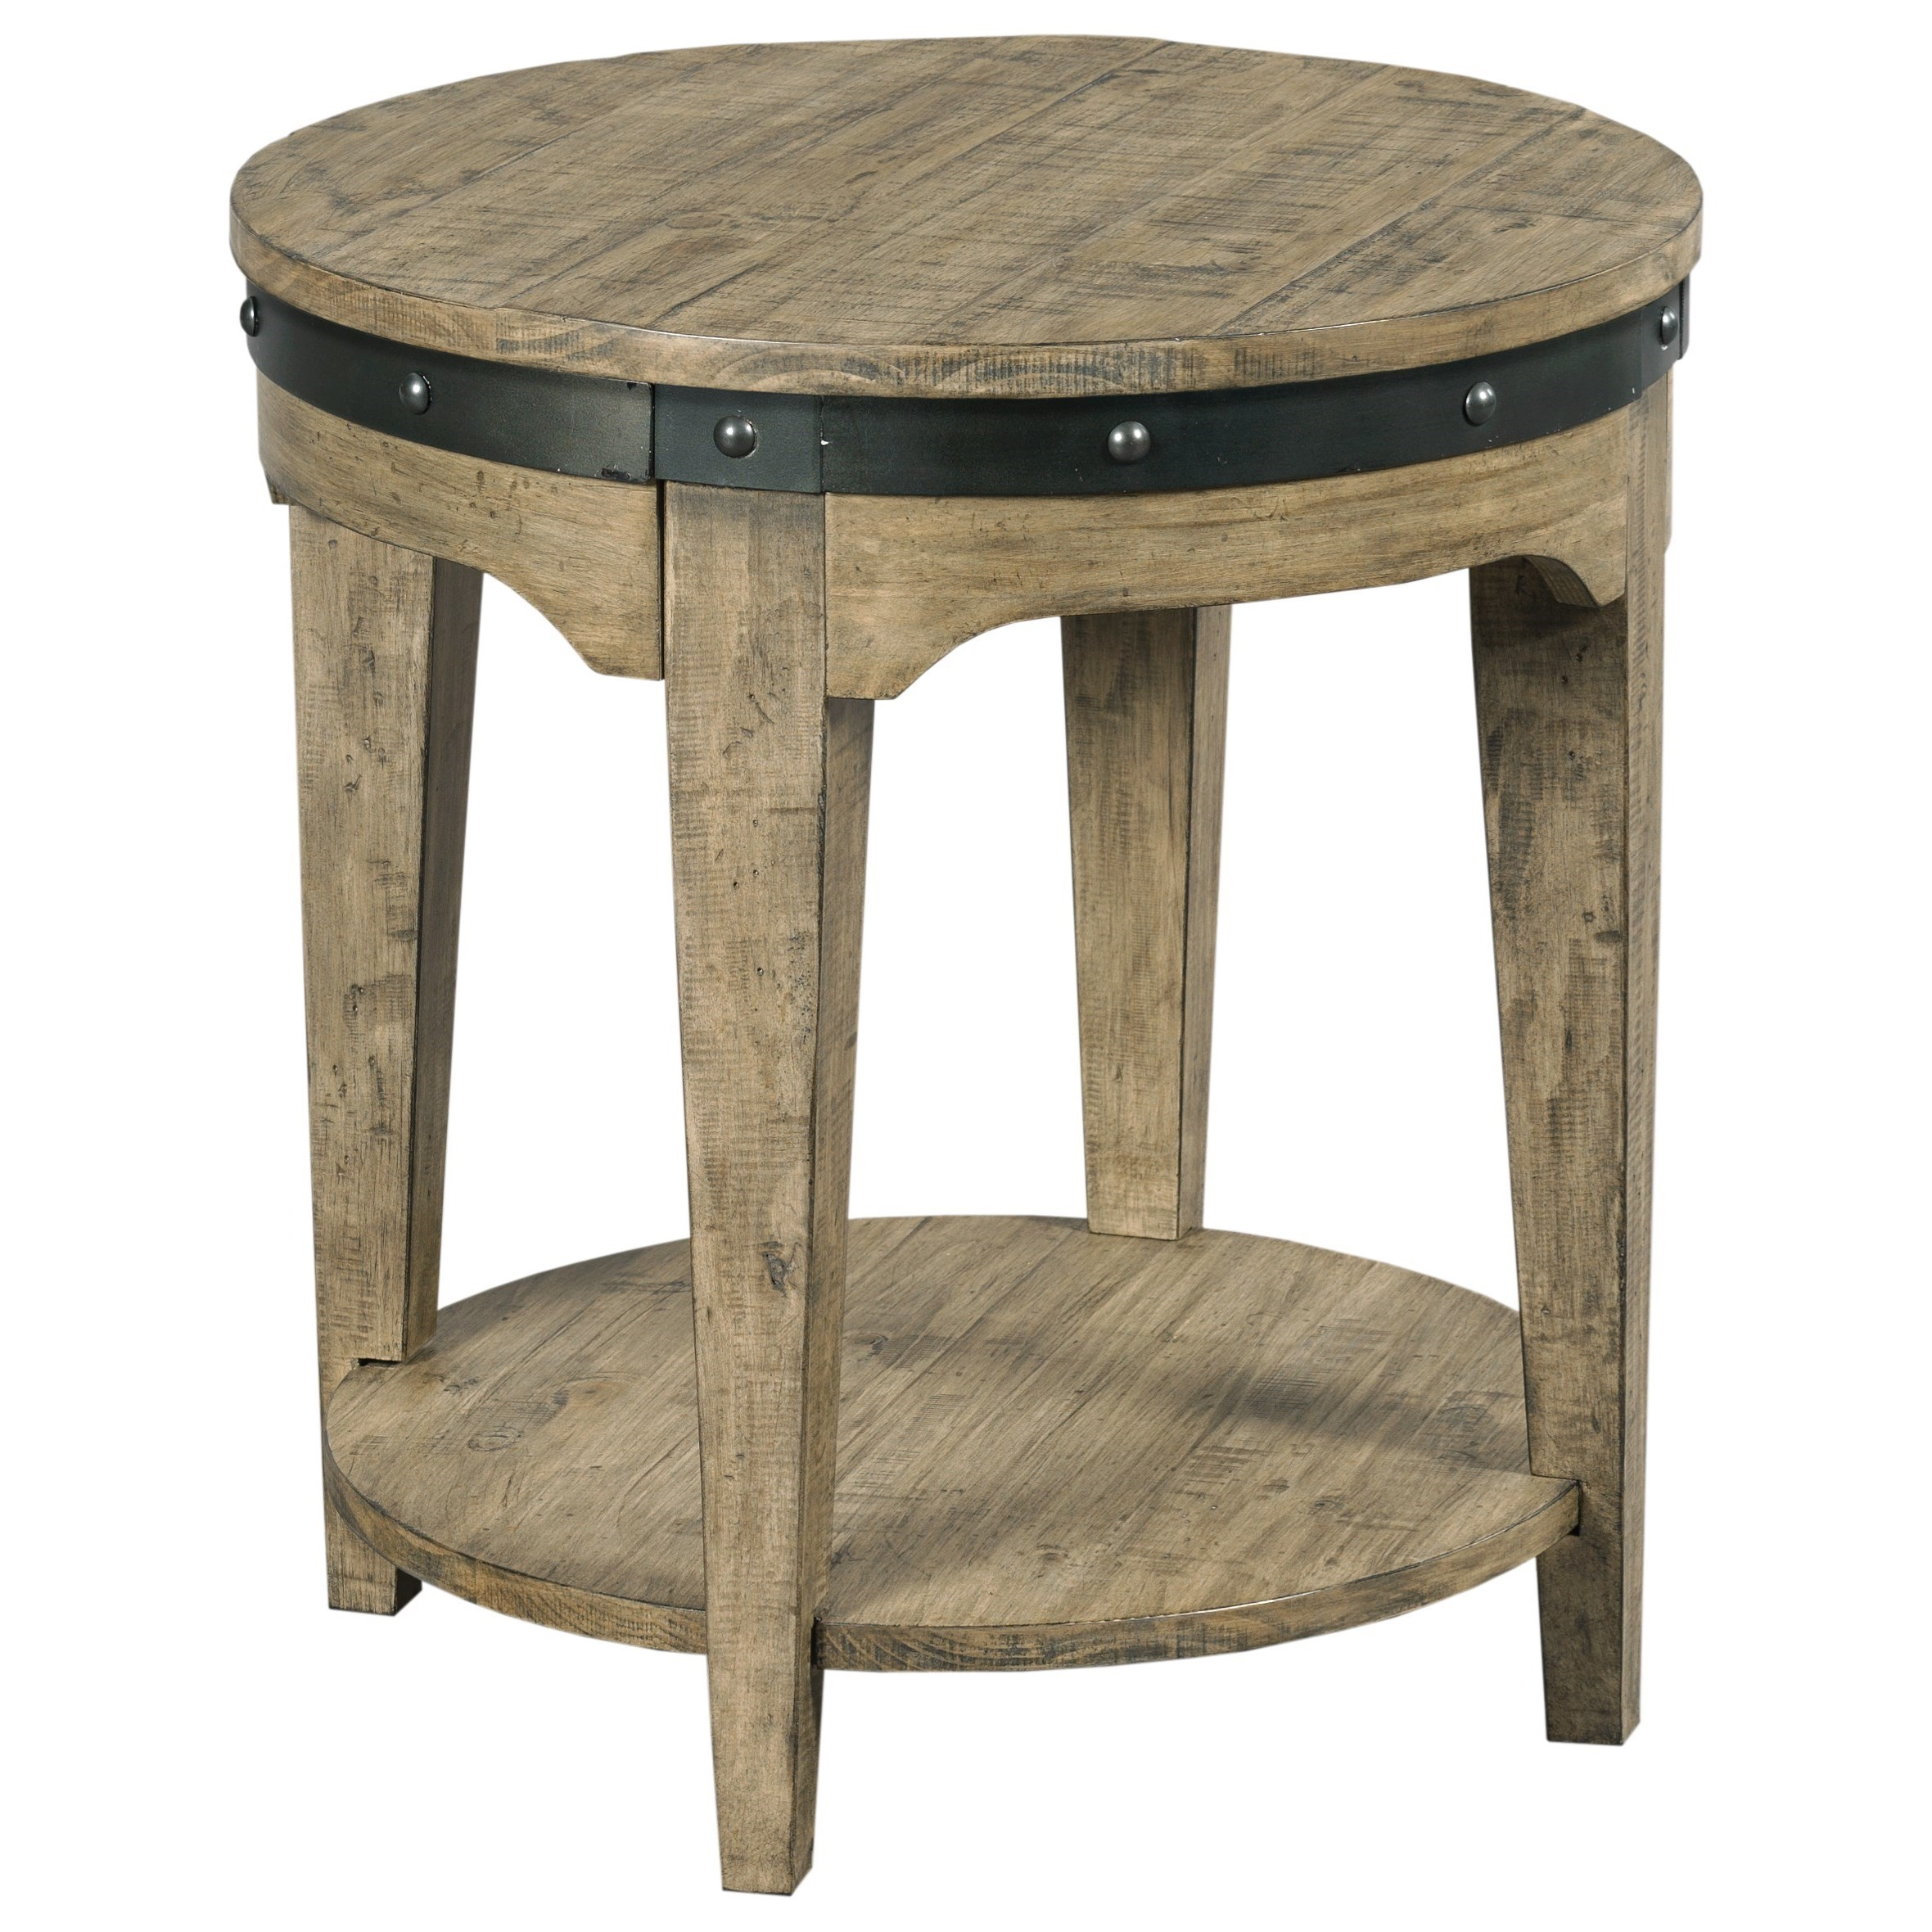 Plank Road Artisans Round End Table                     by Kincaid Furniture at Johnny Janosik